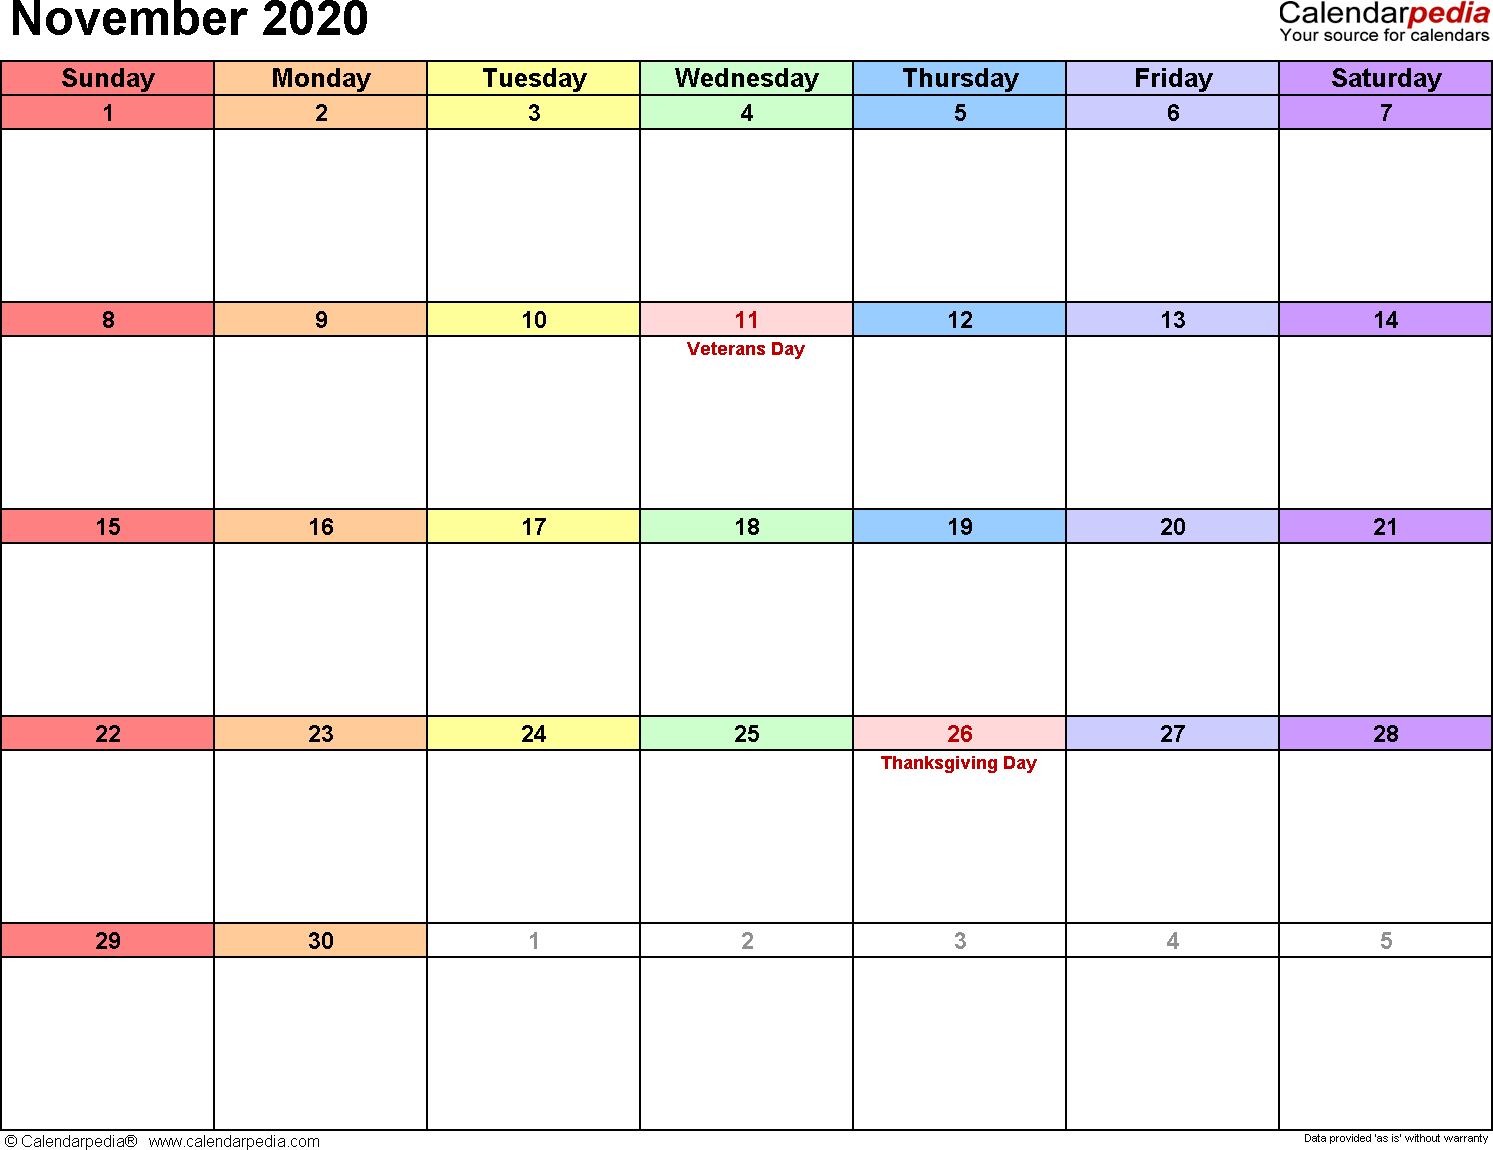 Calendar For Nov 2020 November 2020 Calendars for Word, Excel & PDF